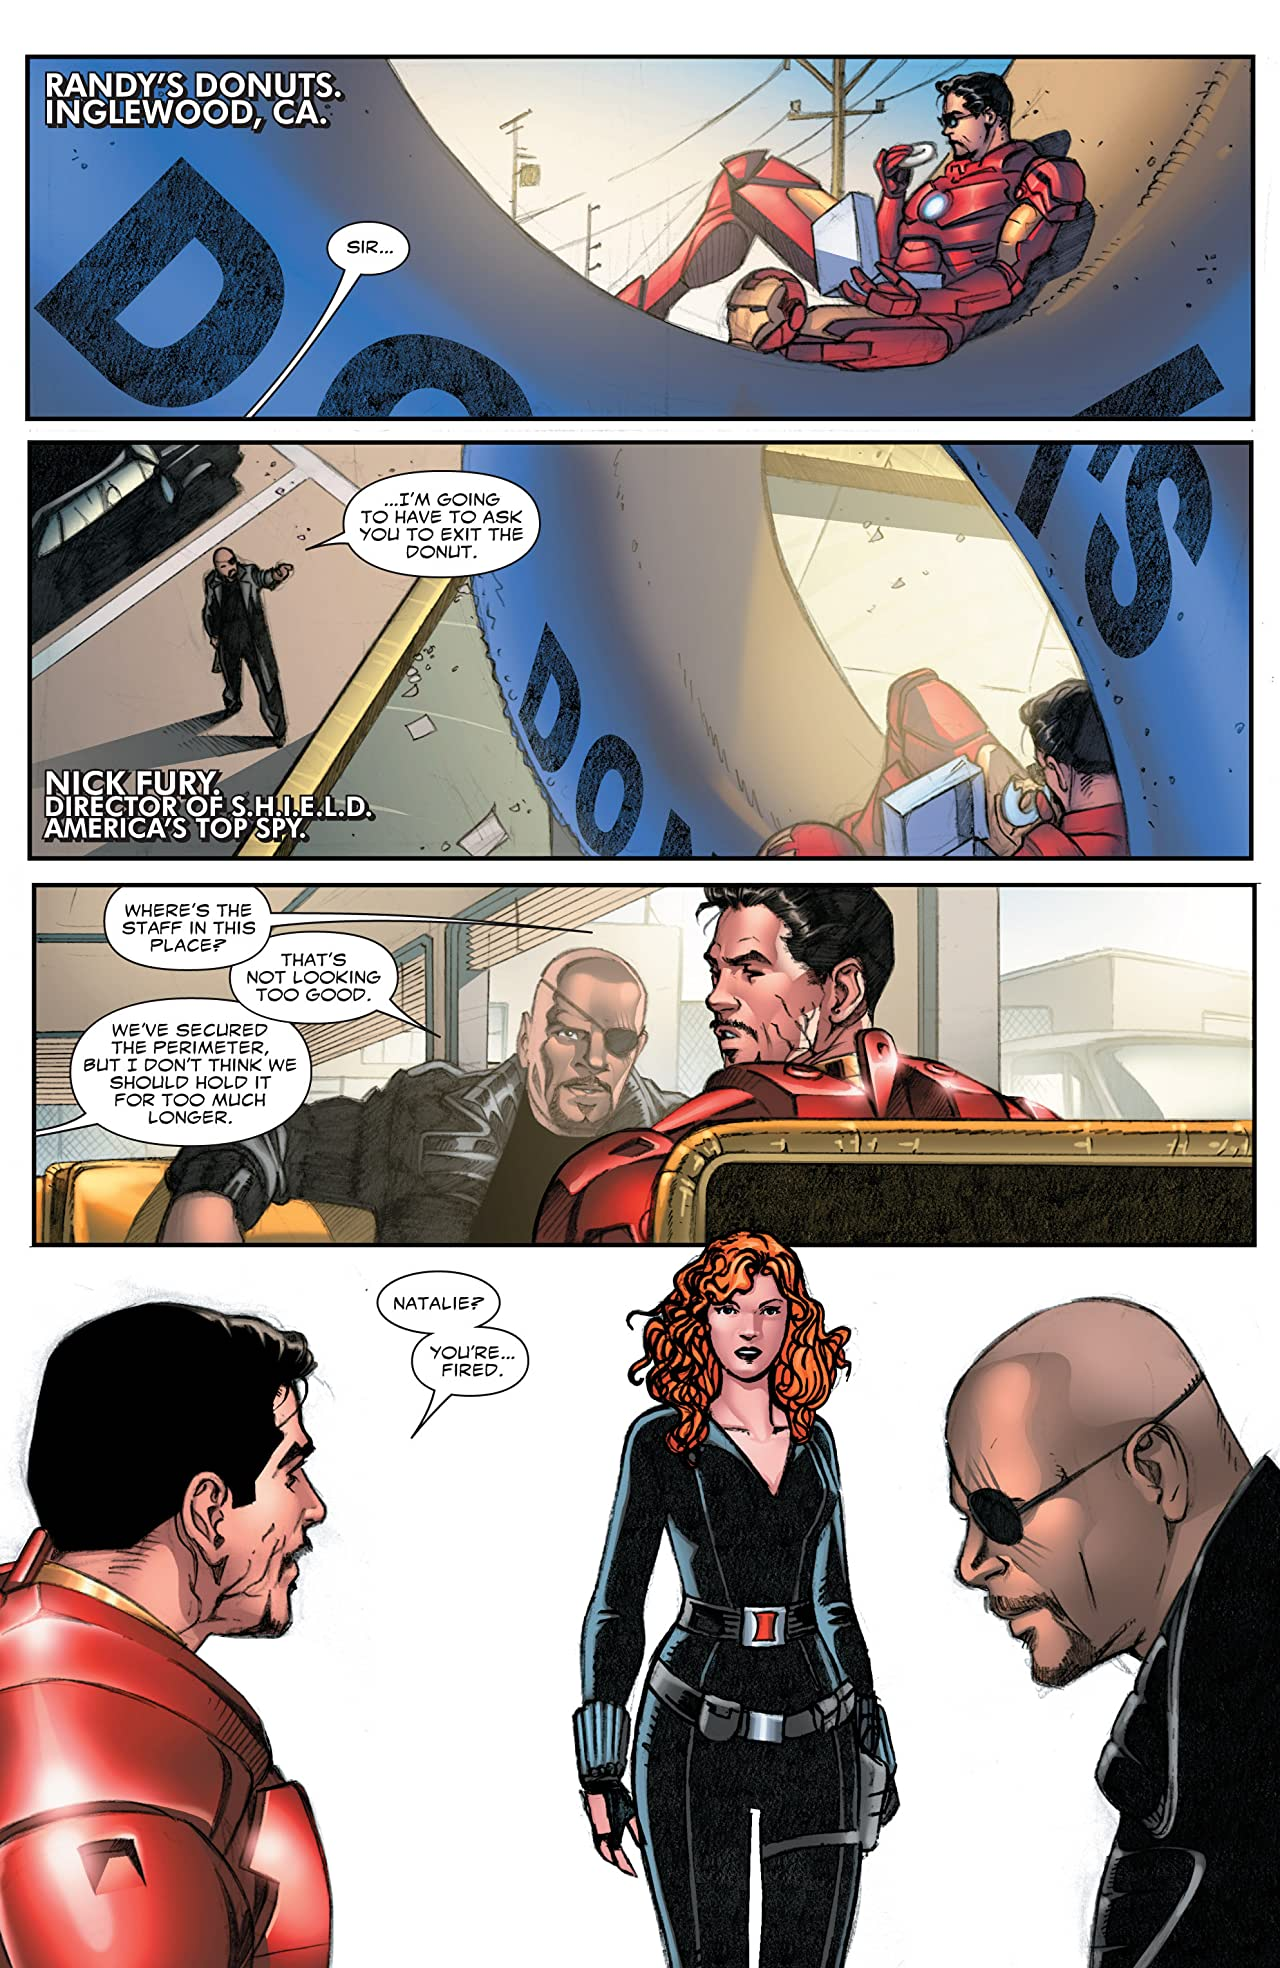 Marvel's Iron Man 2 Adaptation #2 (of 2)